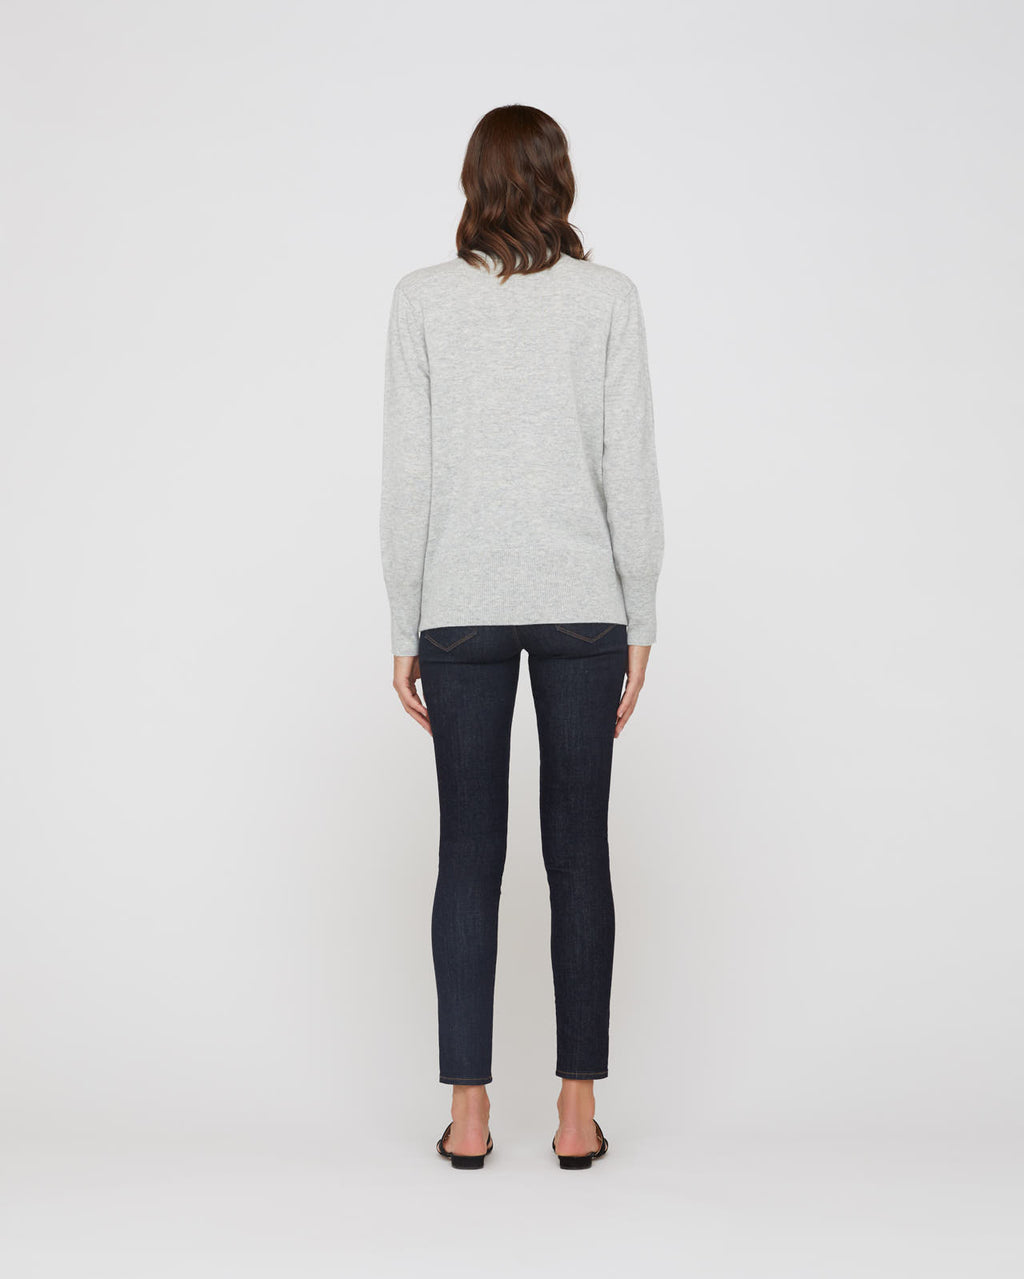 The Lana Sweater in Light Heather Grey